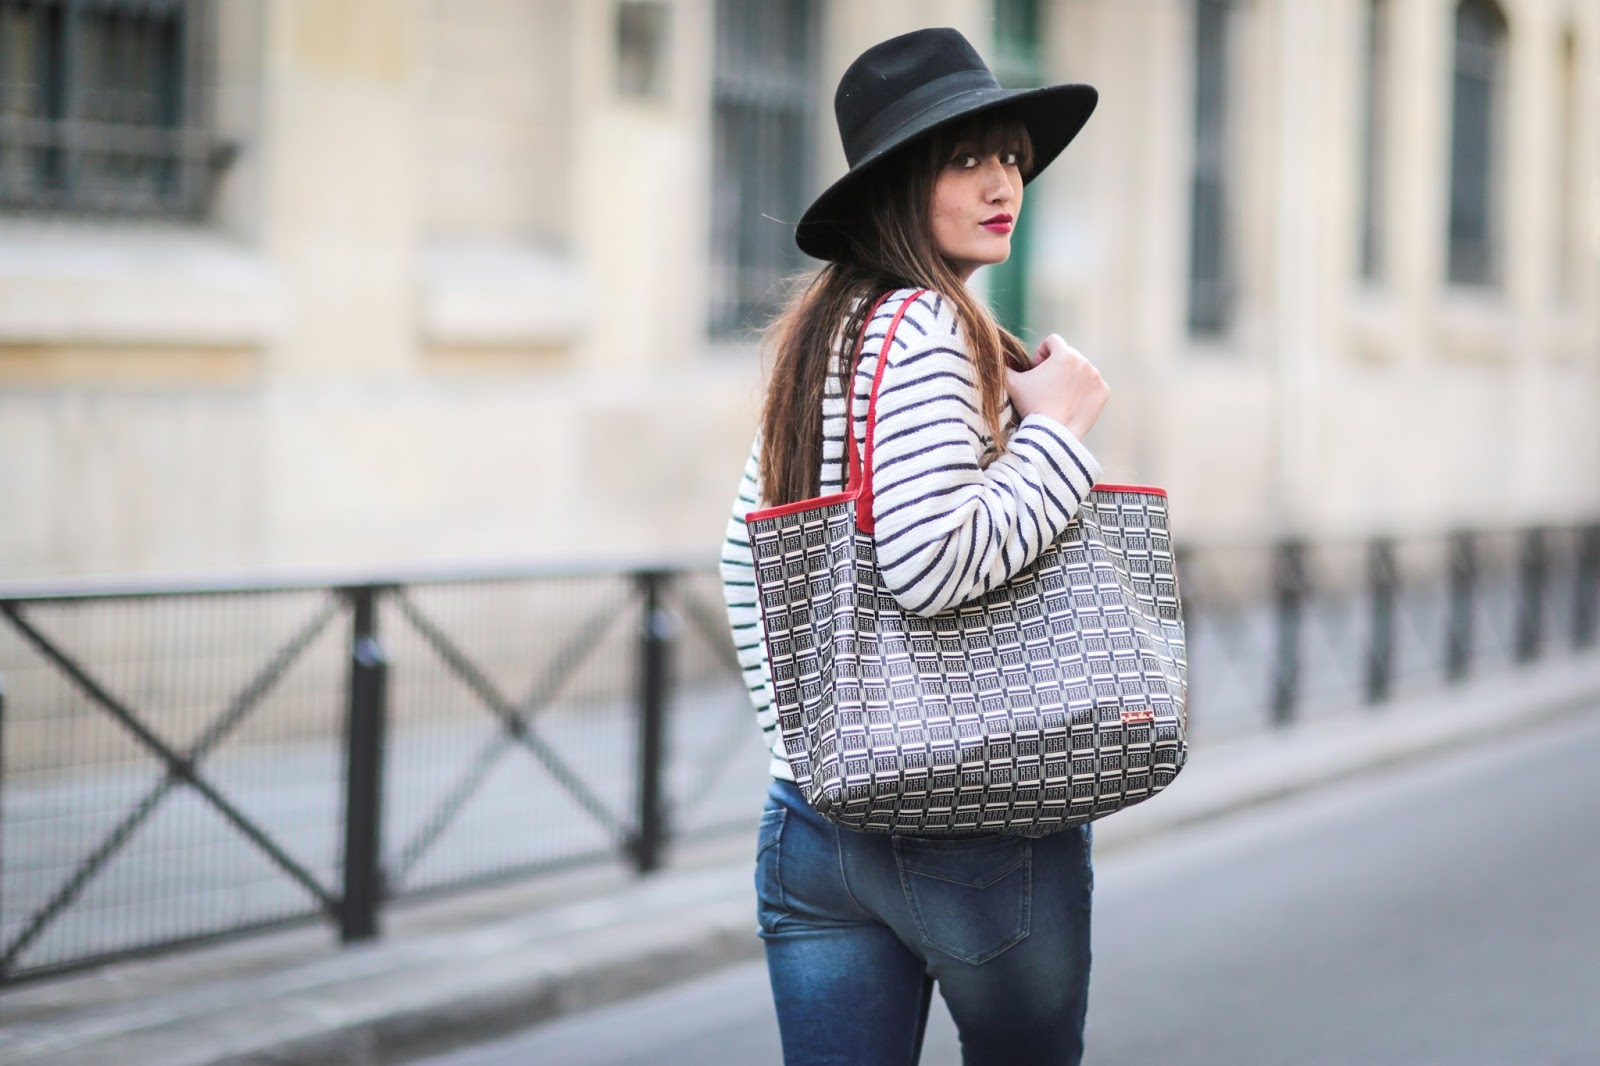 meetmeinparee, blogger, streetstyle, paris style, chic parisian style, jeans look, mode